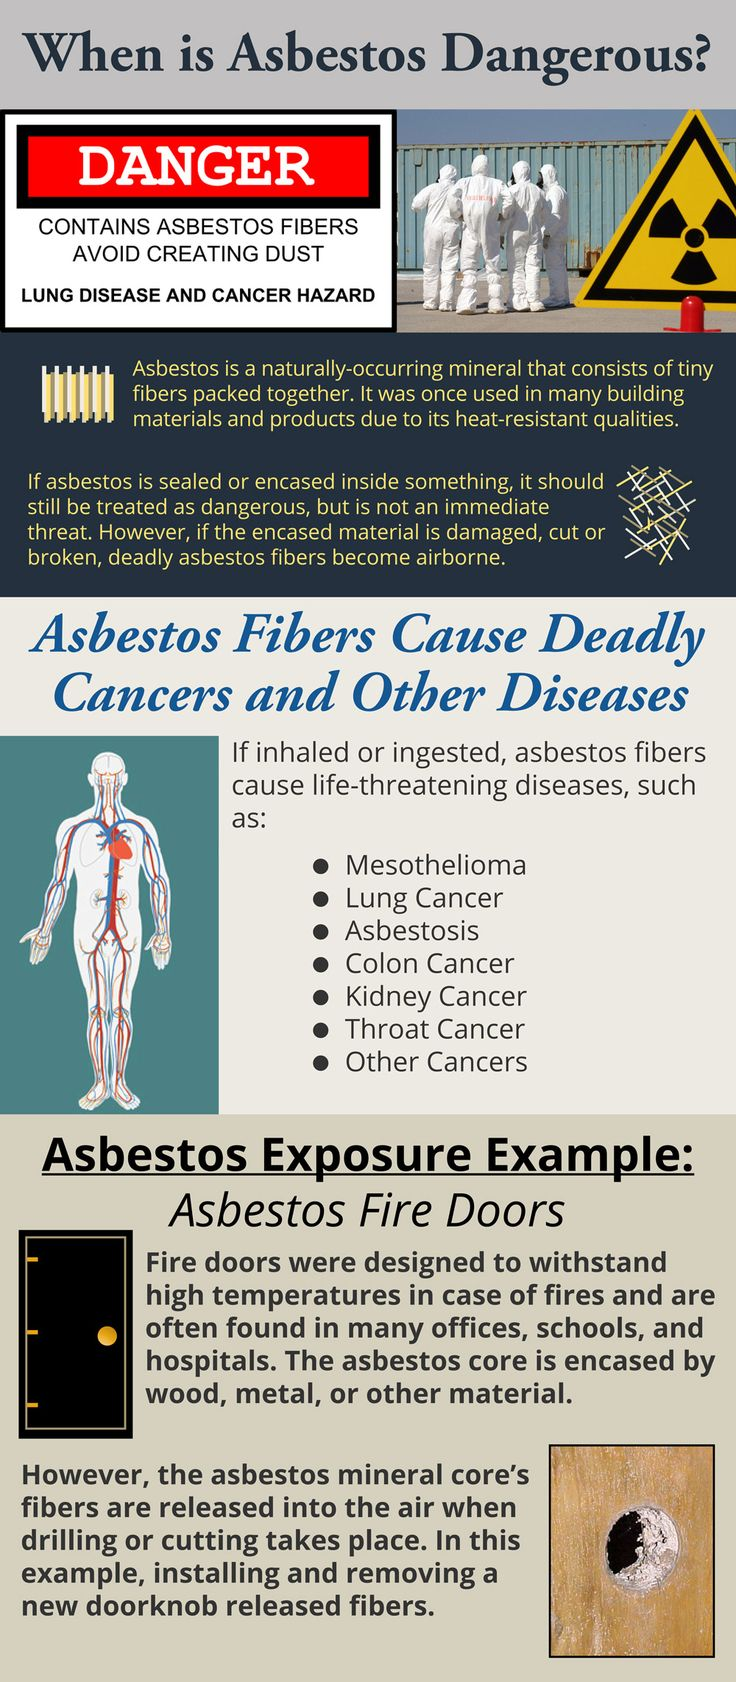 30 best the dangers of asbestos images on pinterest earth asbestos is dangerous when its fibers are not sealed or contained 1betcityfo Images